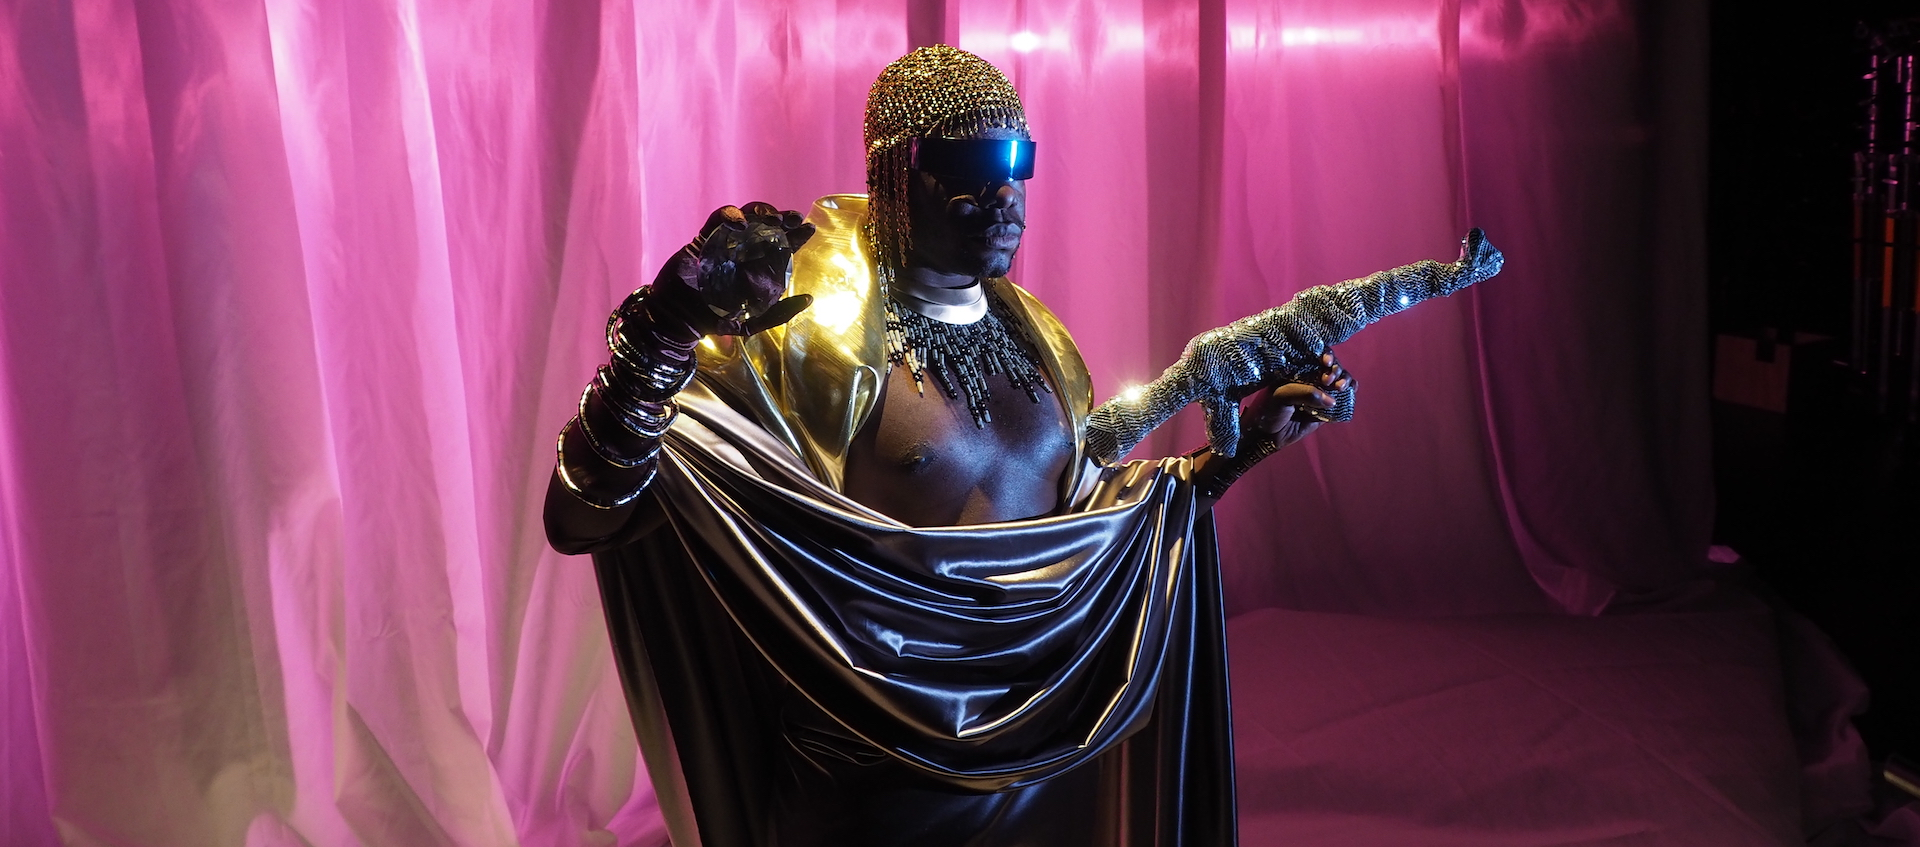 Artist Jaamil Olawale Kosoko stands on a stage with a pink fabric backdrop, wrapped in a gray silk sheet, wearing a metallic gold scarf, bejeweled crocheted beanie and gloves with bangle bracelets. In his left hand he holds what appears to be a rifle wrapped in sequined fabric